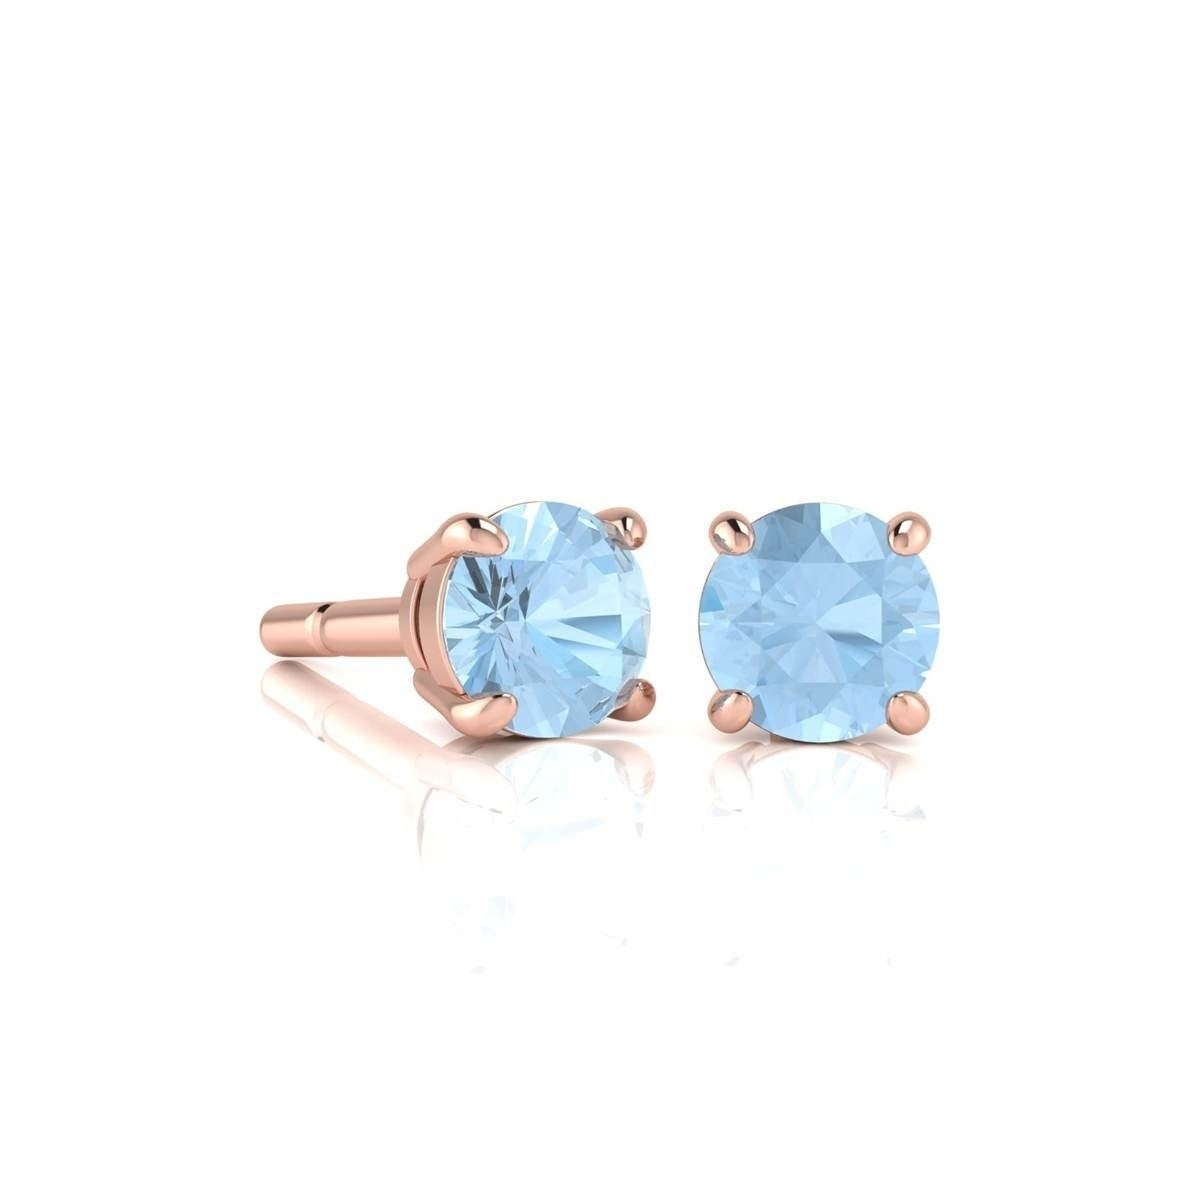 blue irene normal aquamarine stud earrings lyst jewelry aqua marine pink in product neuwirth gallery ylwgold